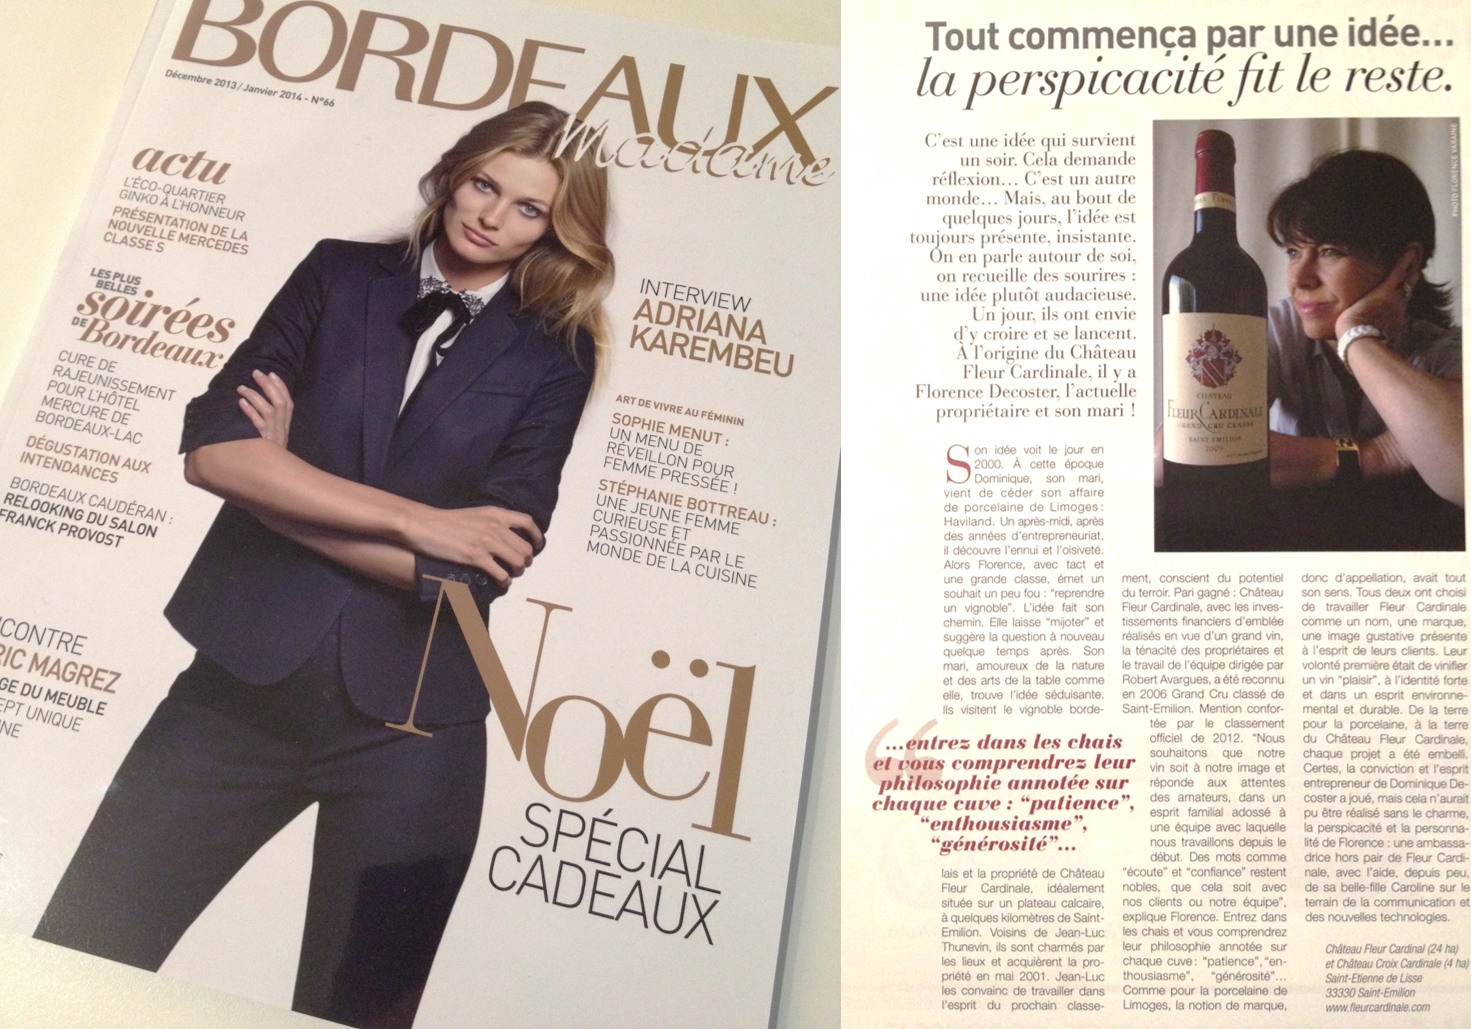 florence decoster in french magazine bordeaux madame | château